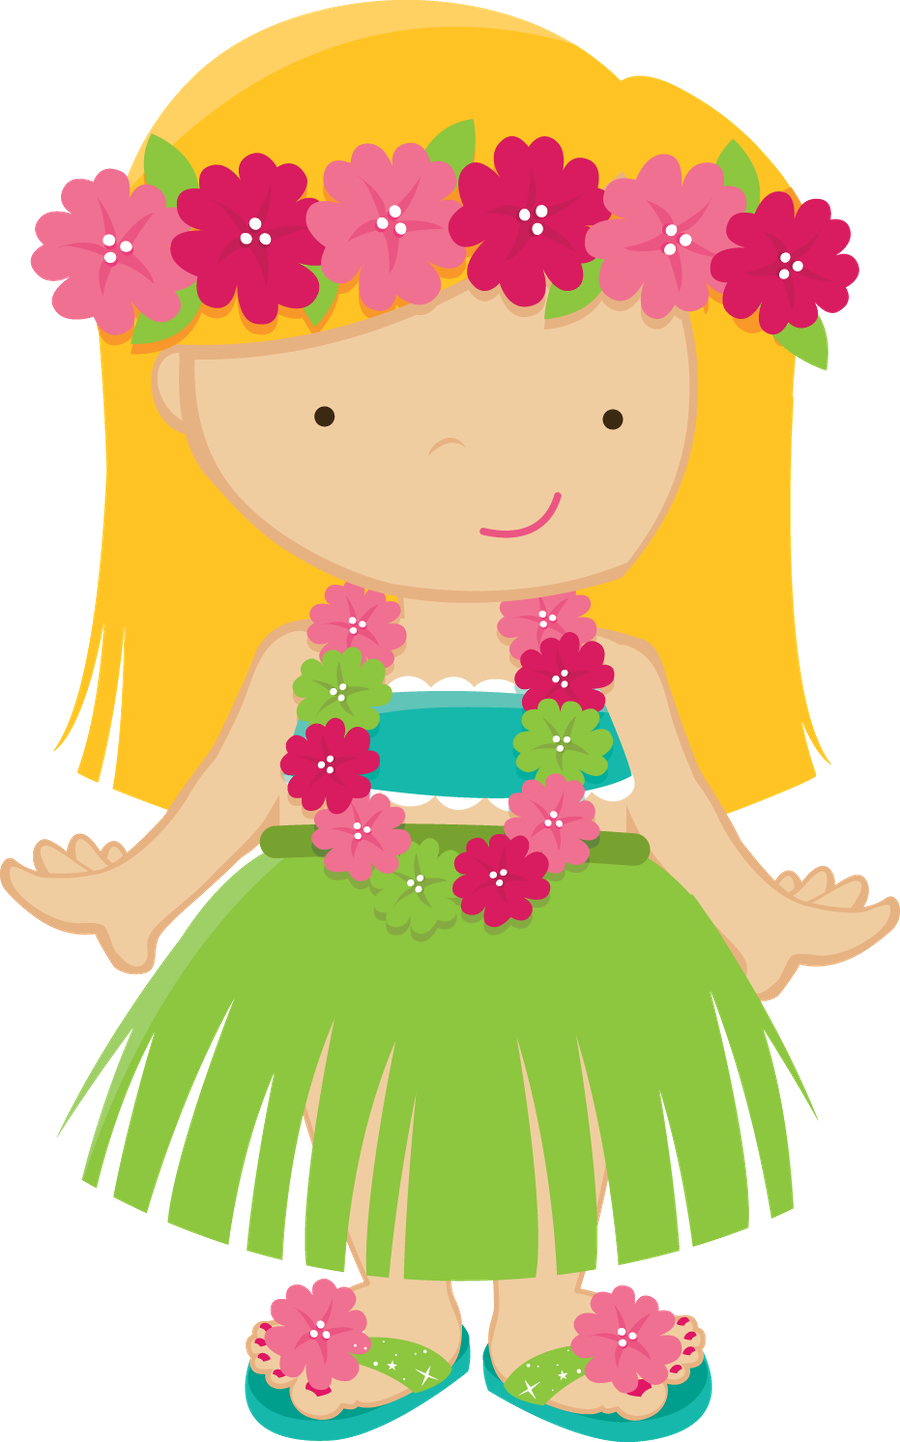 Pineapple clipart hawaiian theme. Zwd hula girl png